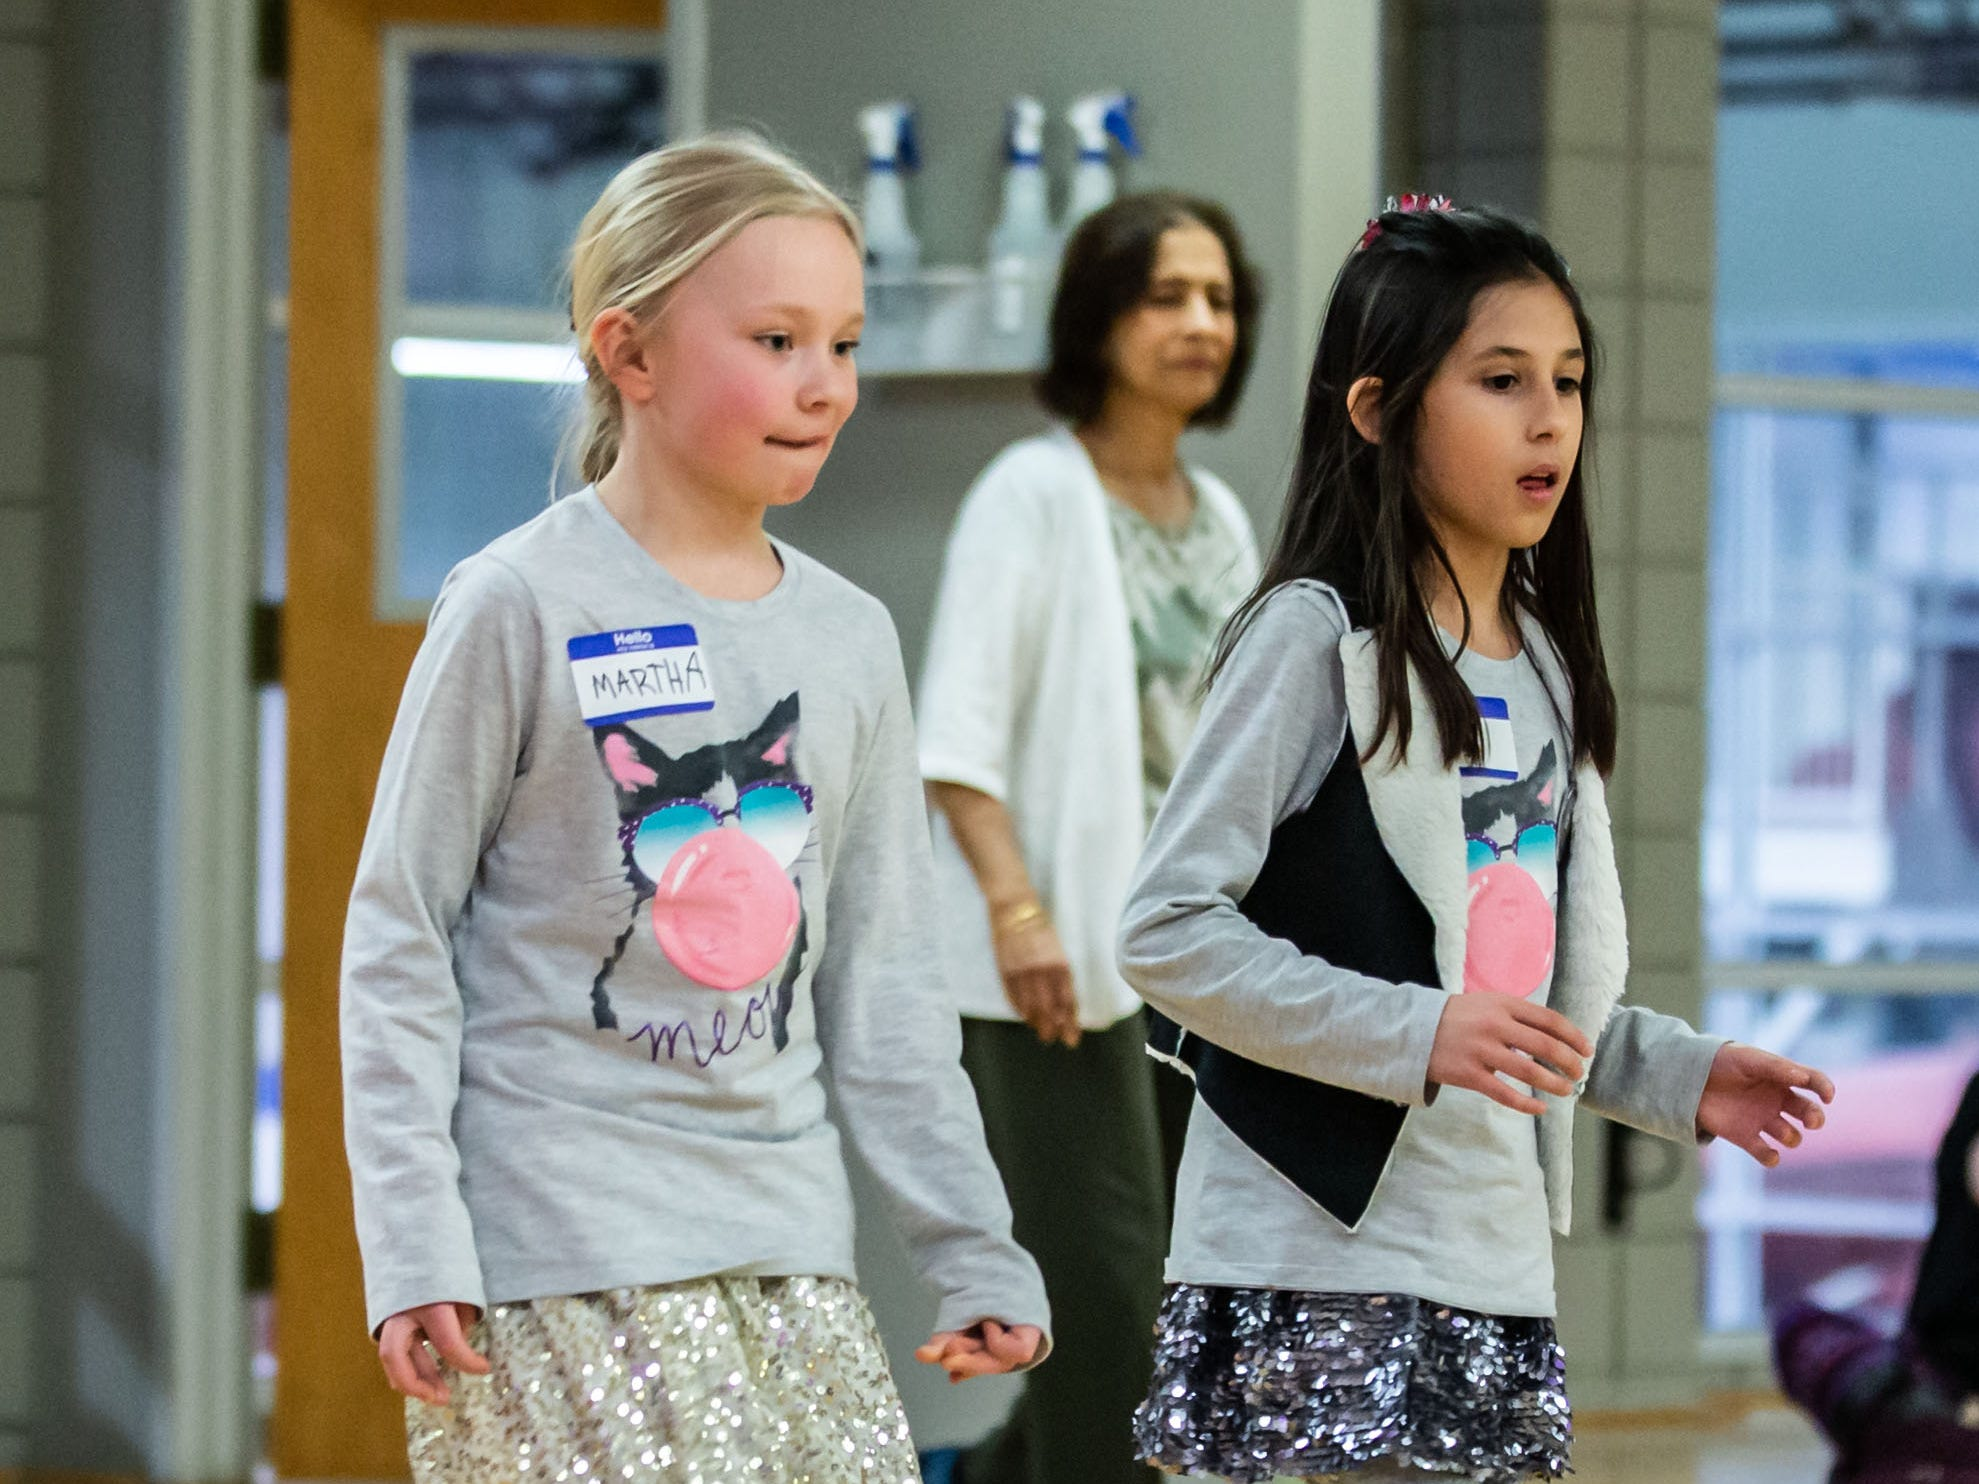 Martha Kosanke (left), 8, and Leah Cheudoir, 10, both of Menomonee Falls, try line dancing during the Hometown Hoedown NEA Big-Read Kickoff Event at the Tri County YMCA in Menomonee Falls on Saturday, Feb. 23, 2019. The event featured live music, food, games, and western themed activities for the whole family.